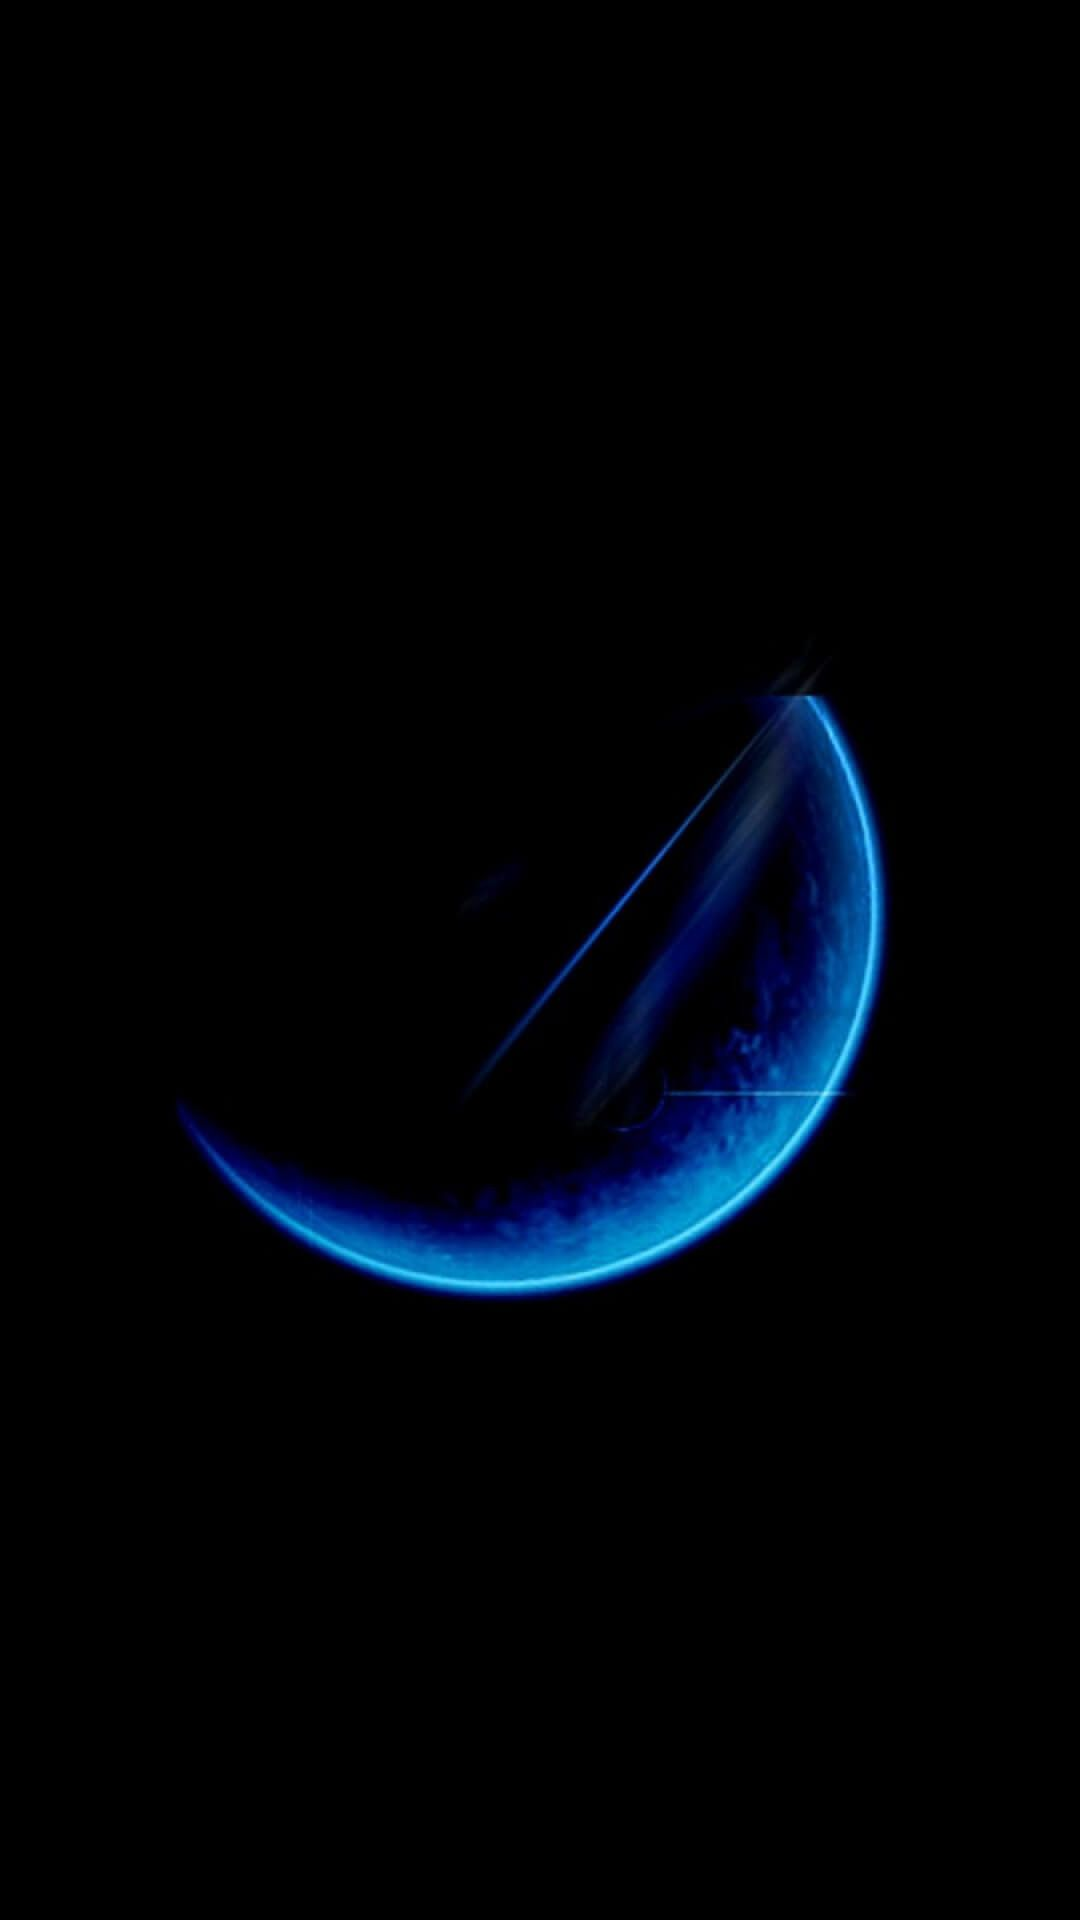 Dark Phone Wallpaper Full Hd Dark Phone Wallpapers Black And Blue Wallpaper Hd Dark Wallpapers